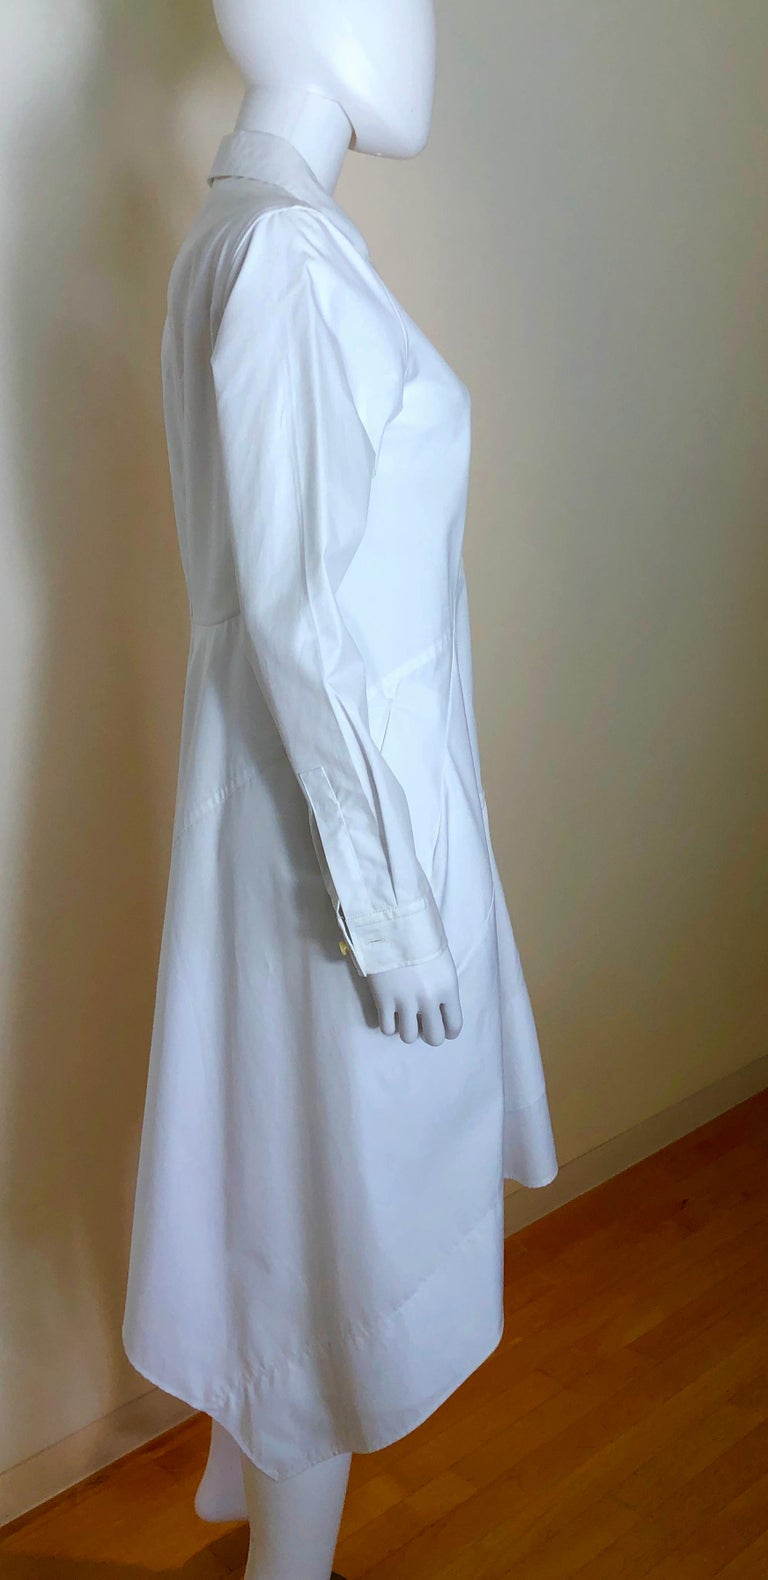 Jil Sander White Cotton Long Sleeve Button Down Handkerchief Causal Dress In Good Condition For Sale In Houston, TX